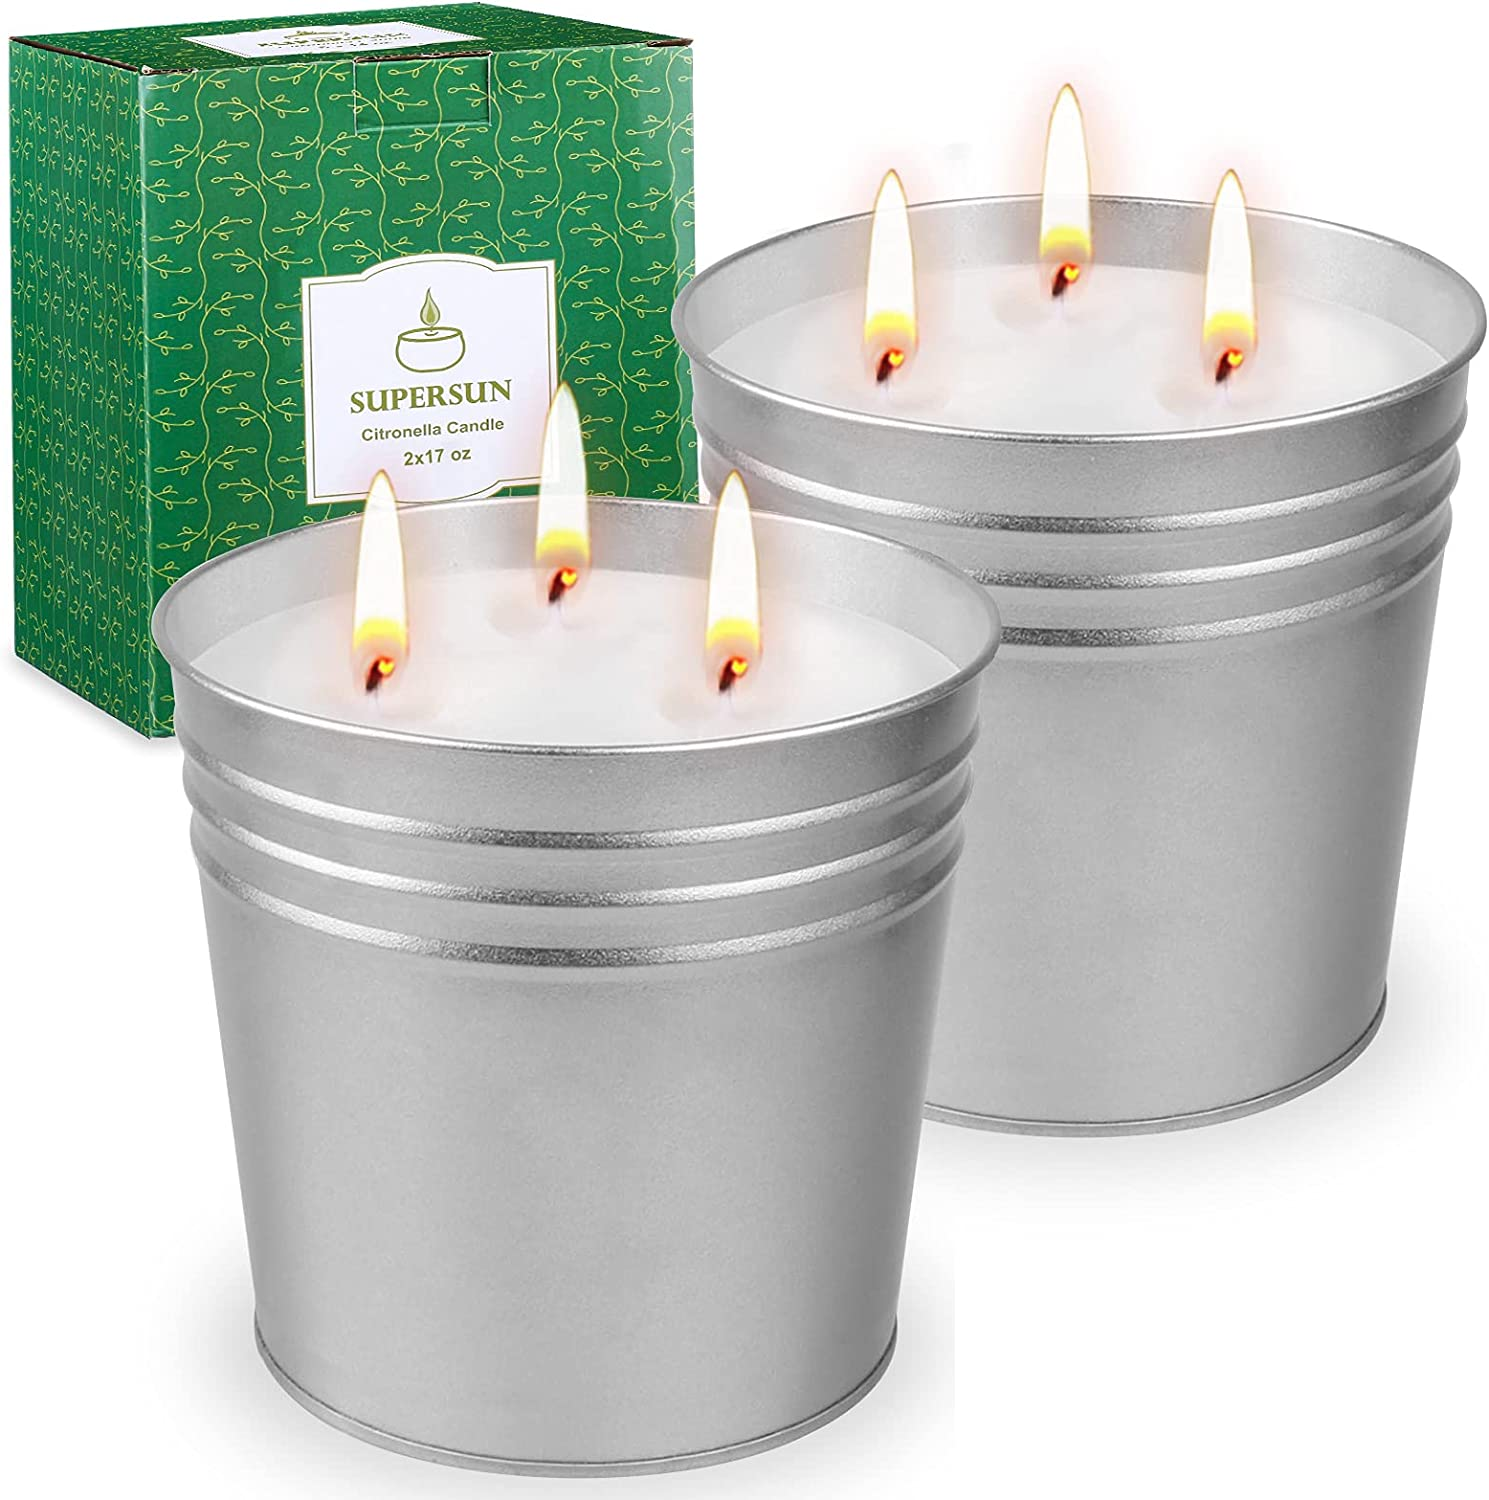 SUPERSUN Garden Citronella Candles Outdoor Large 100 Hours Each Candle, 2 x 17 Ounce Garden Candles, Soy Wax Indoor Candles Set